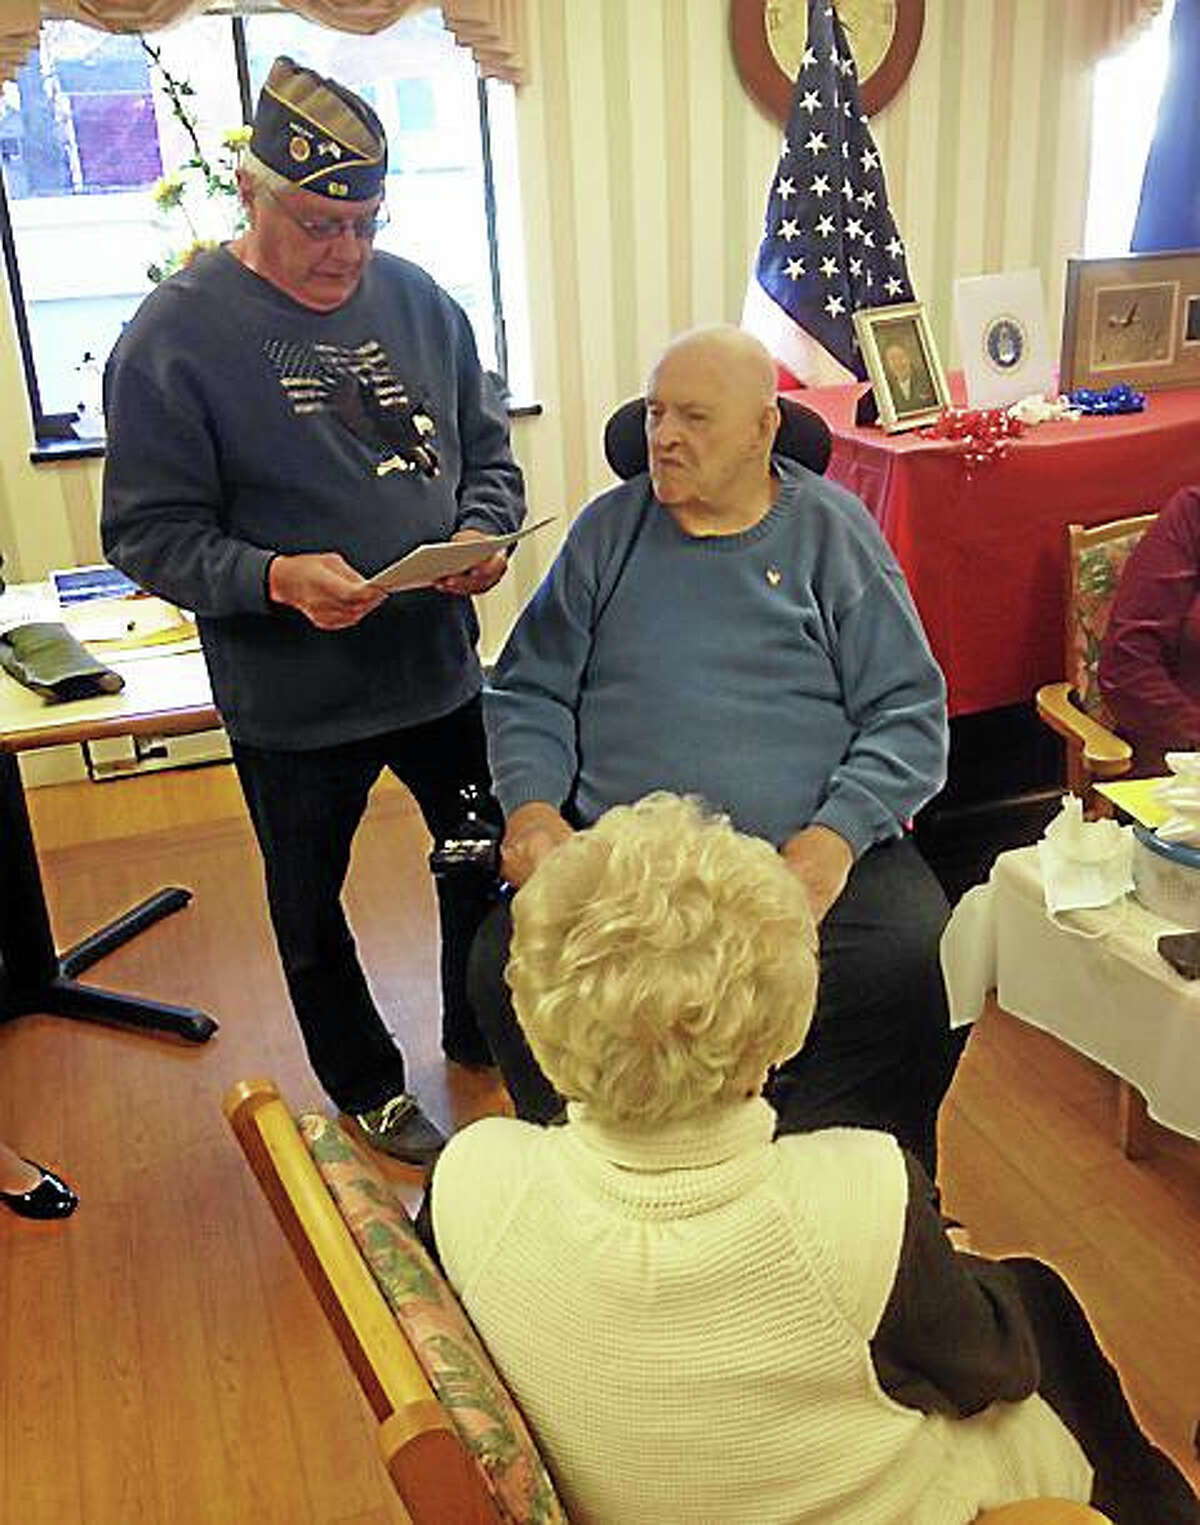 Jeff Mill - The Middletown PressWorld War II veteran at Portland Care in Rehab honored for service time.